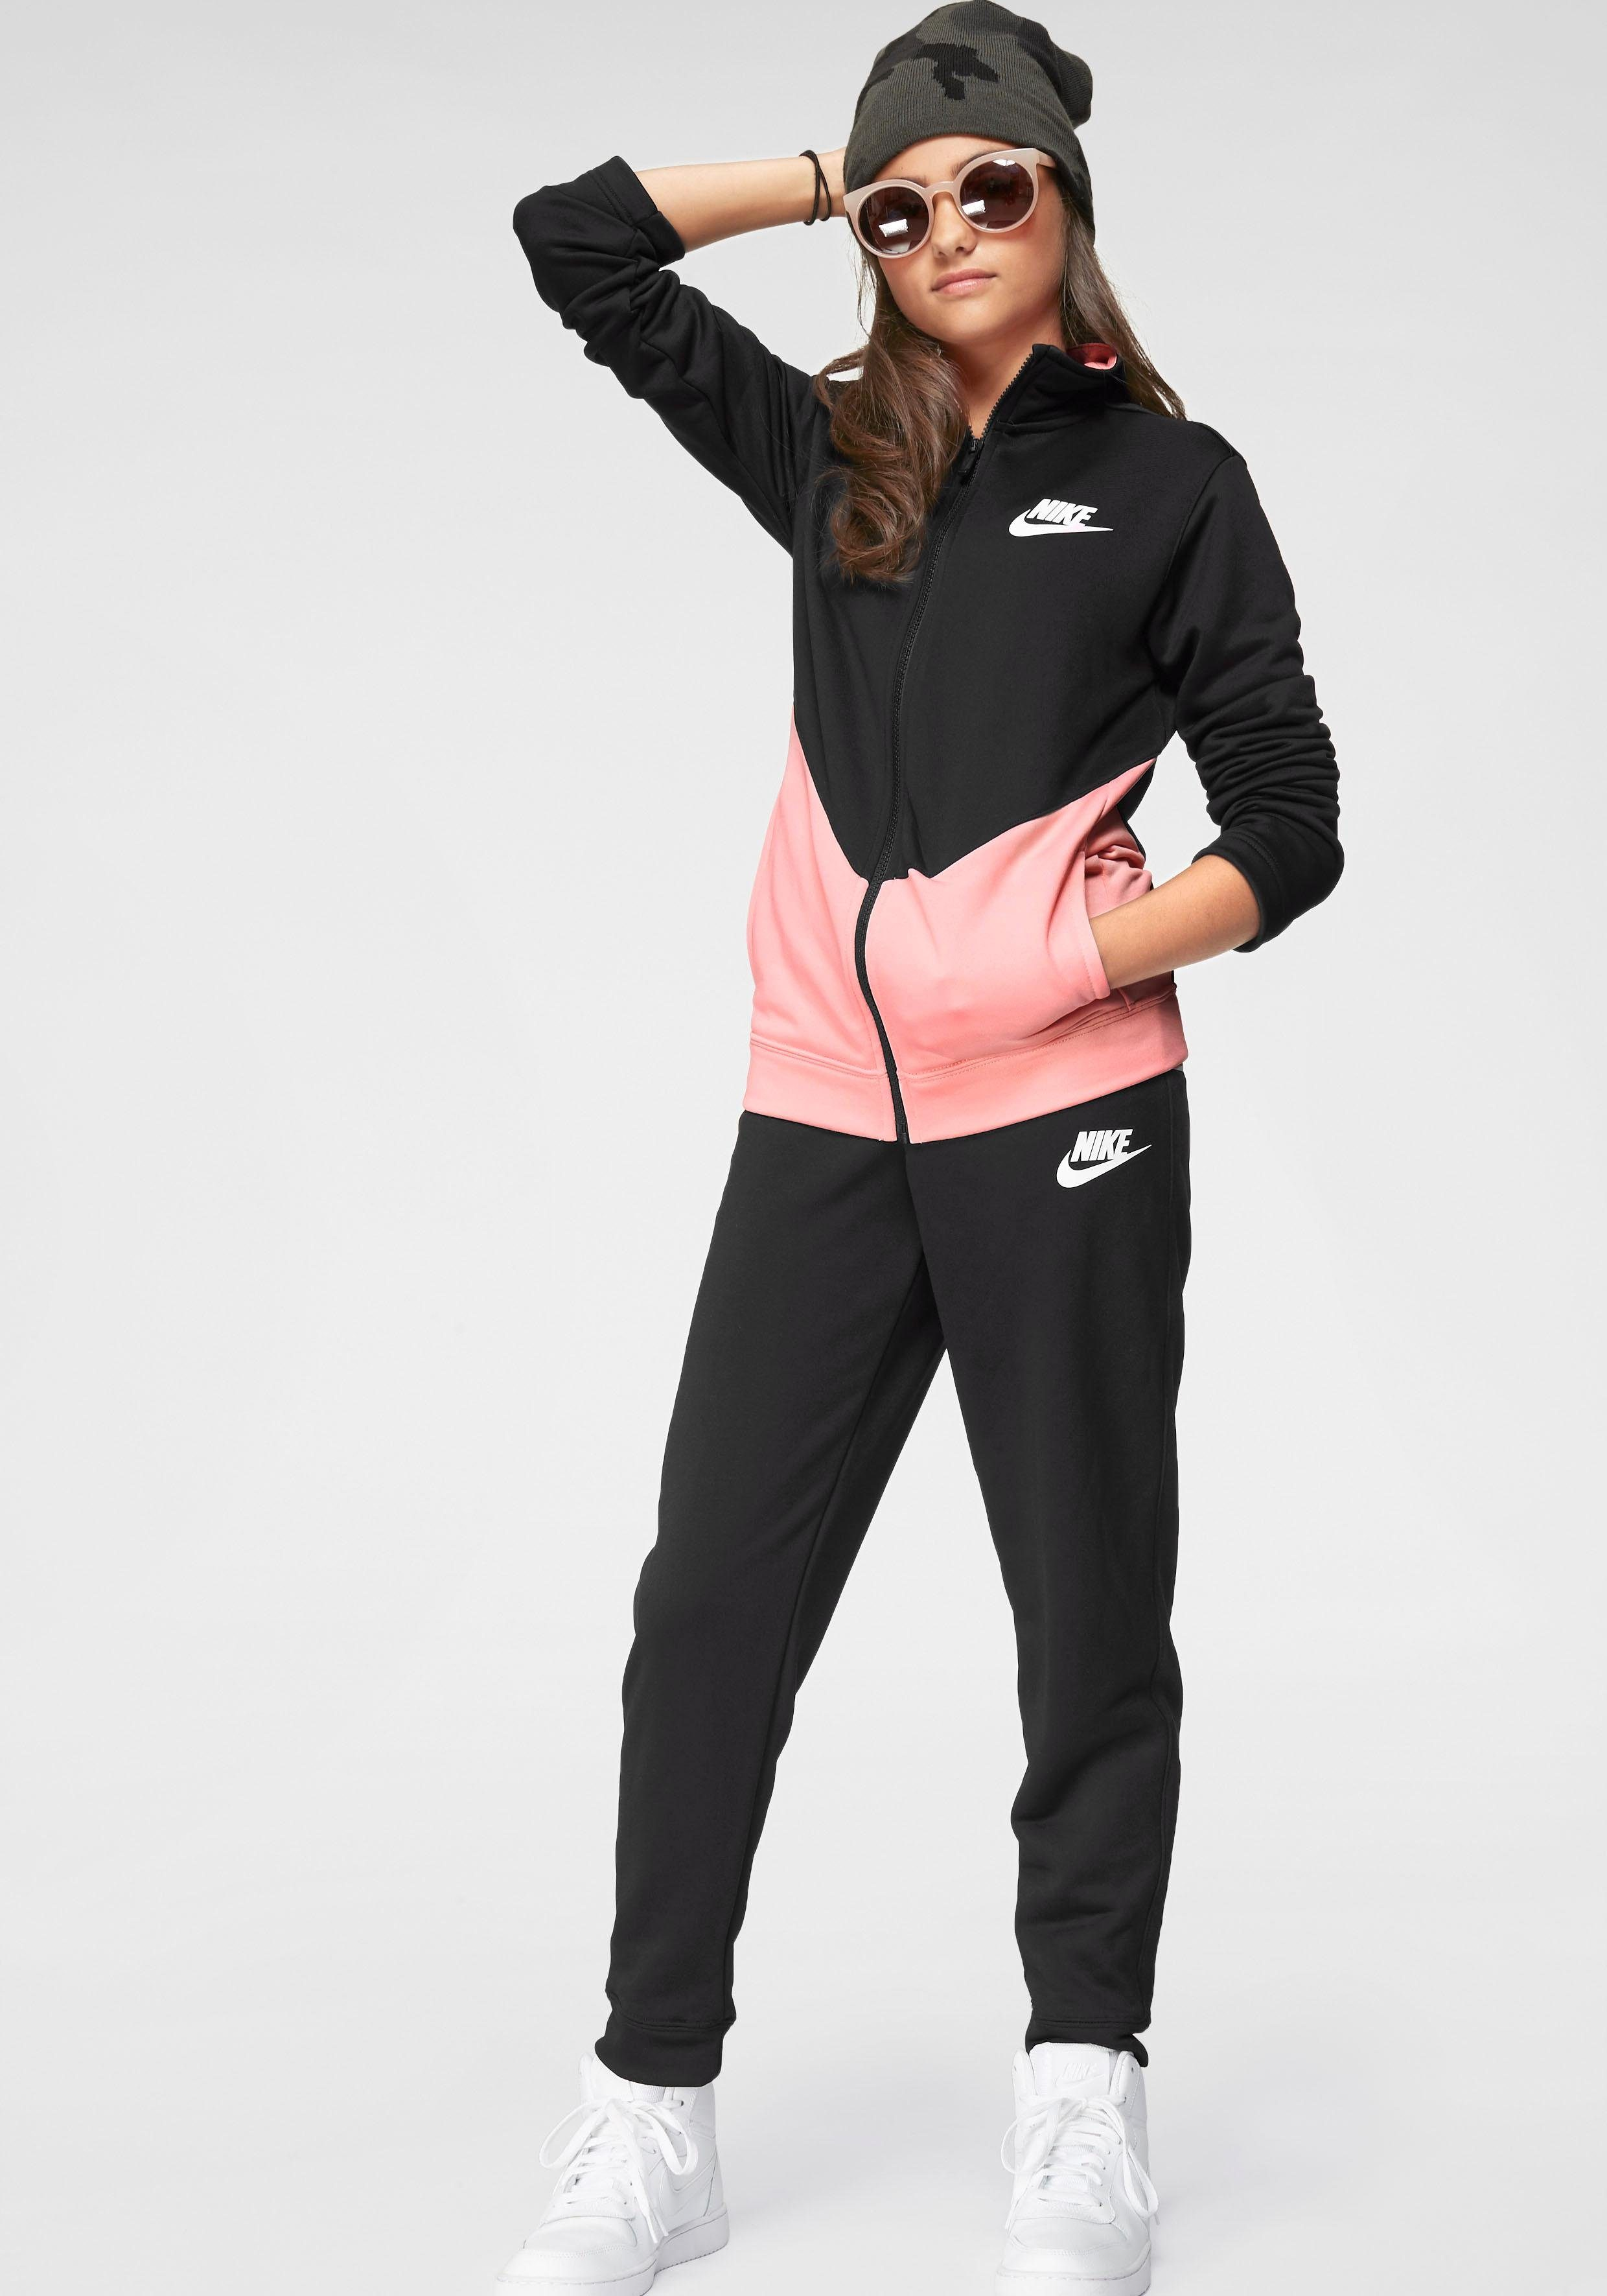 nike damen sportanzug